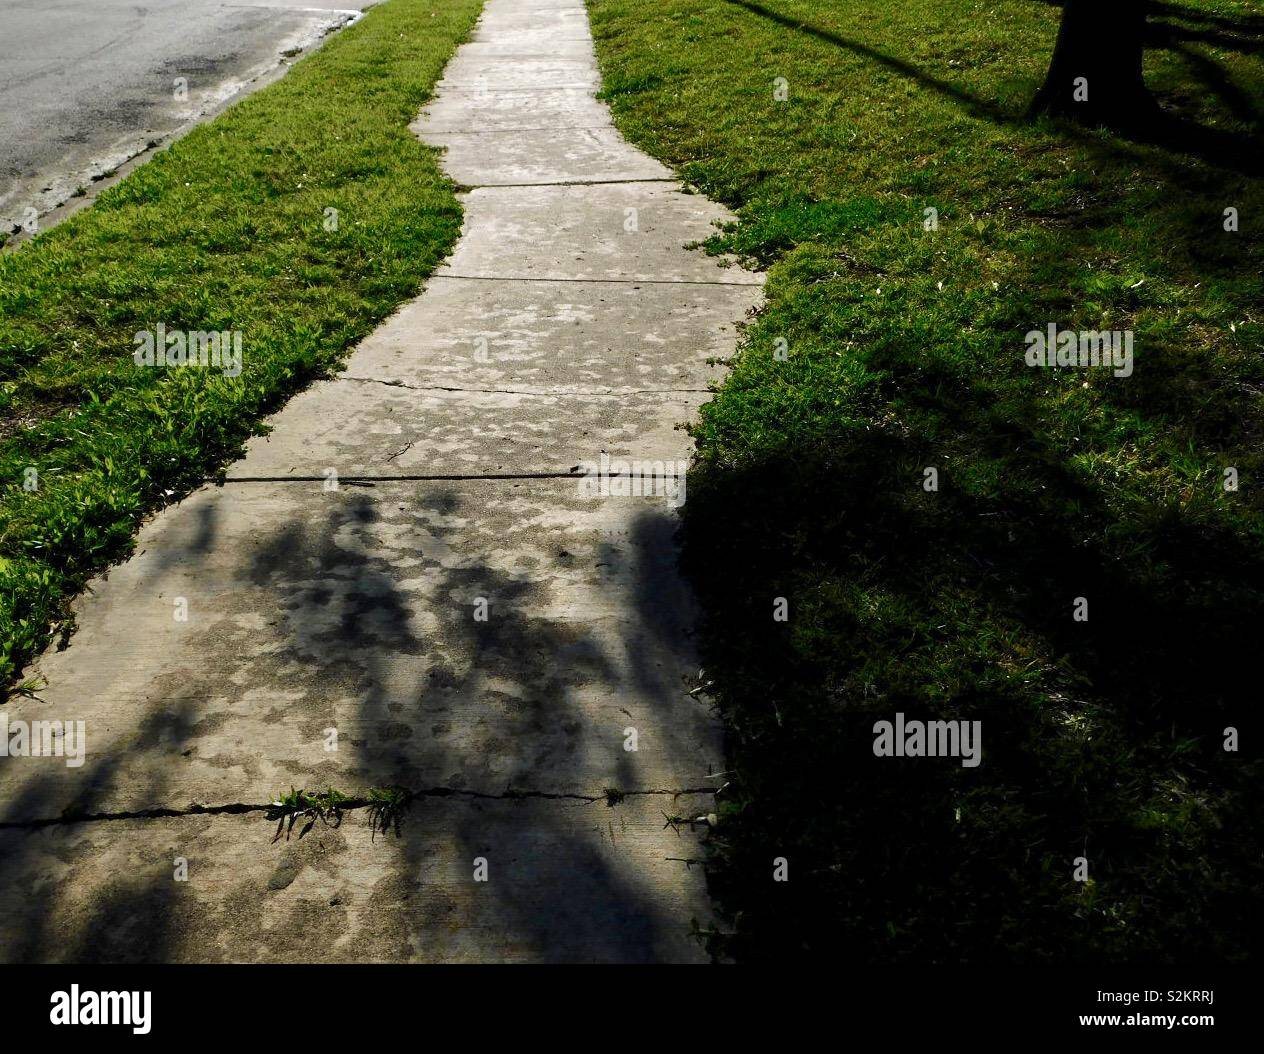 Afternoon sidewalk lit up with sunshine, surrounded by bright green grass, and shaded by trees giving shadows. - Stock Image